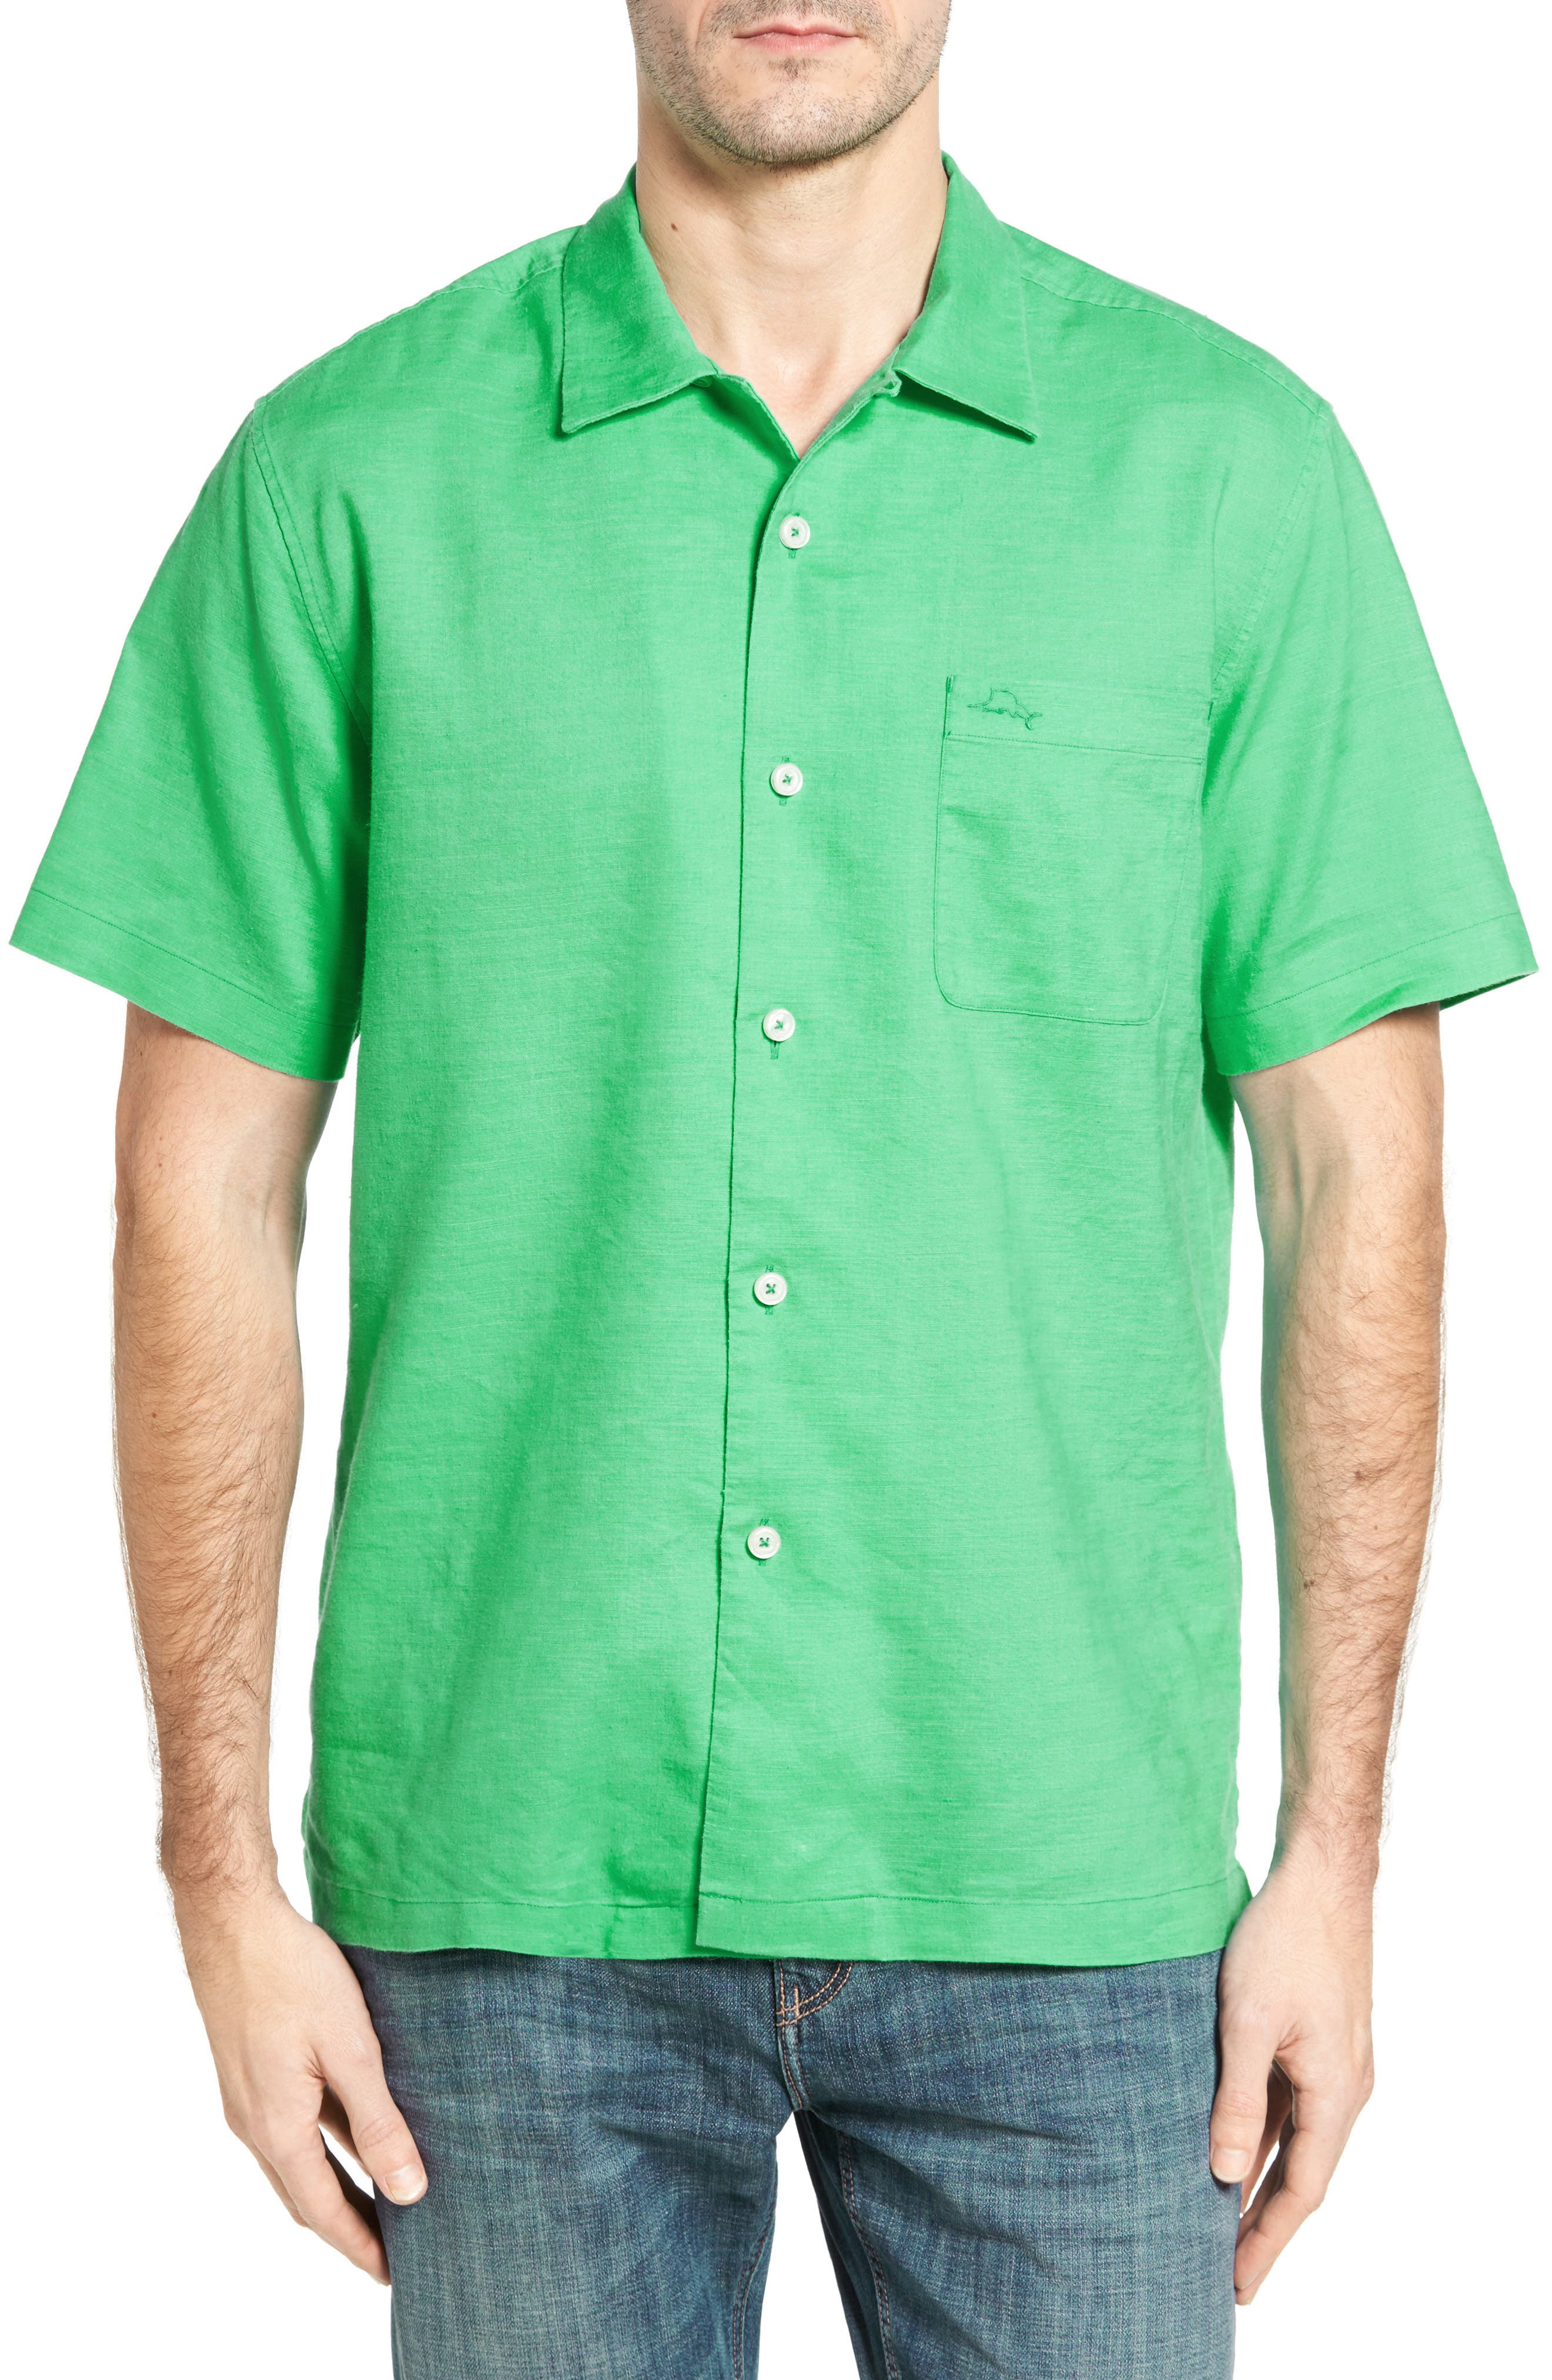 TOMMY BAHAMA Monaco Tides Standard Fit Linen Blend Camp Shirt